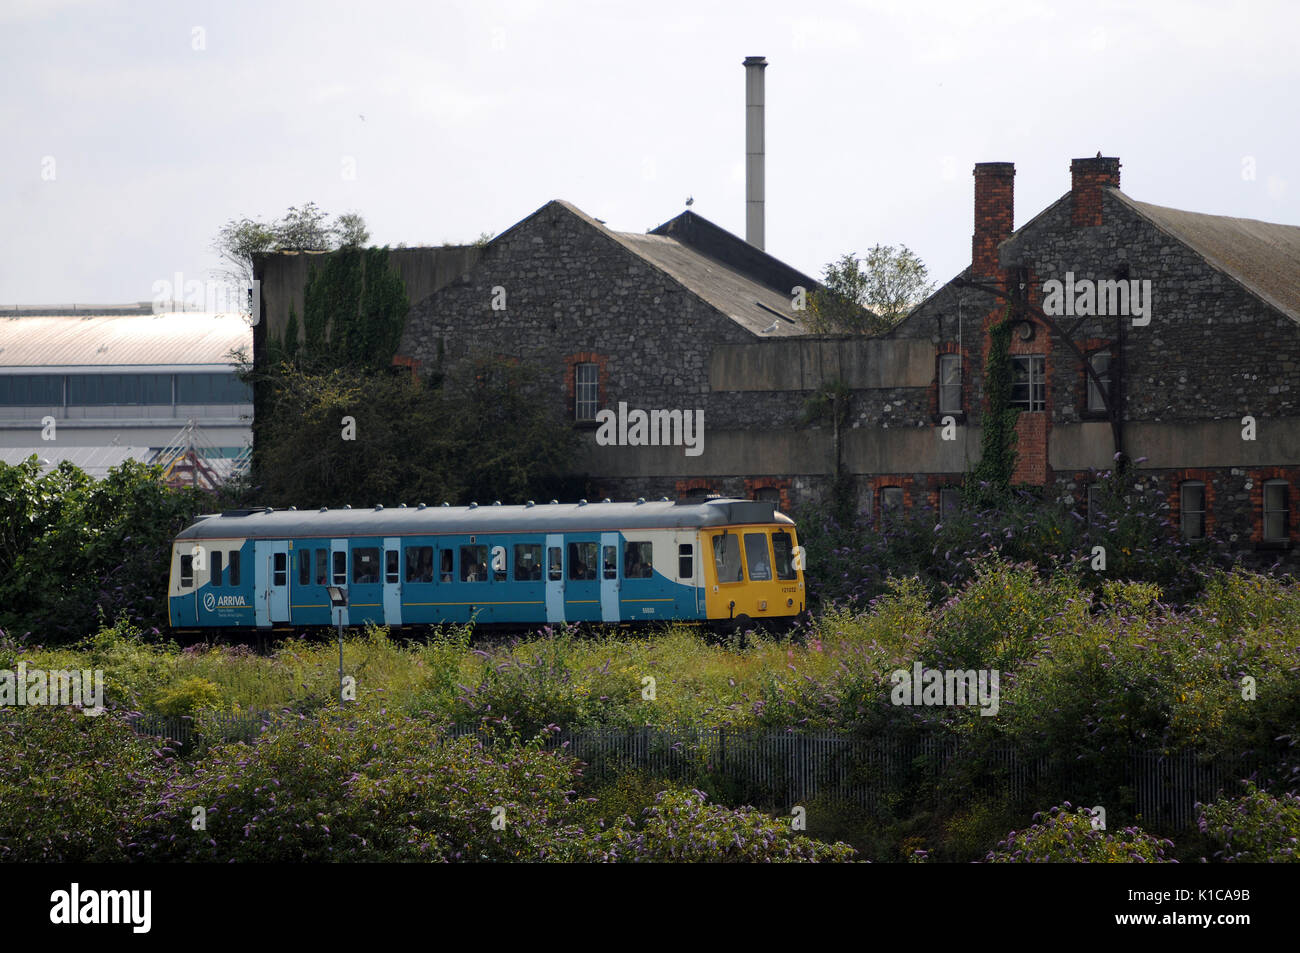 Single car 121 032 with a Cardiff Bay (Formerly Cardiff Bute Road) to Cardiff Queen Street service. - Stock Image